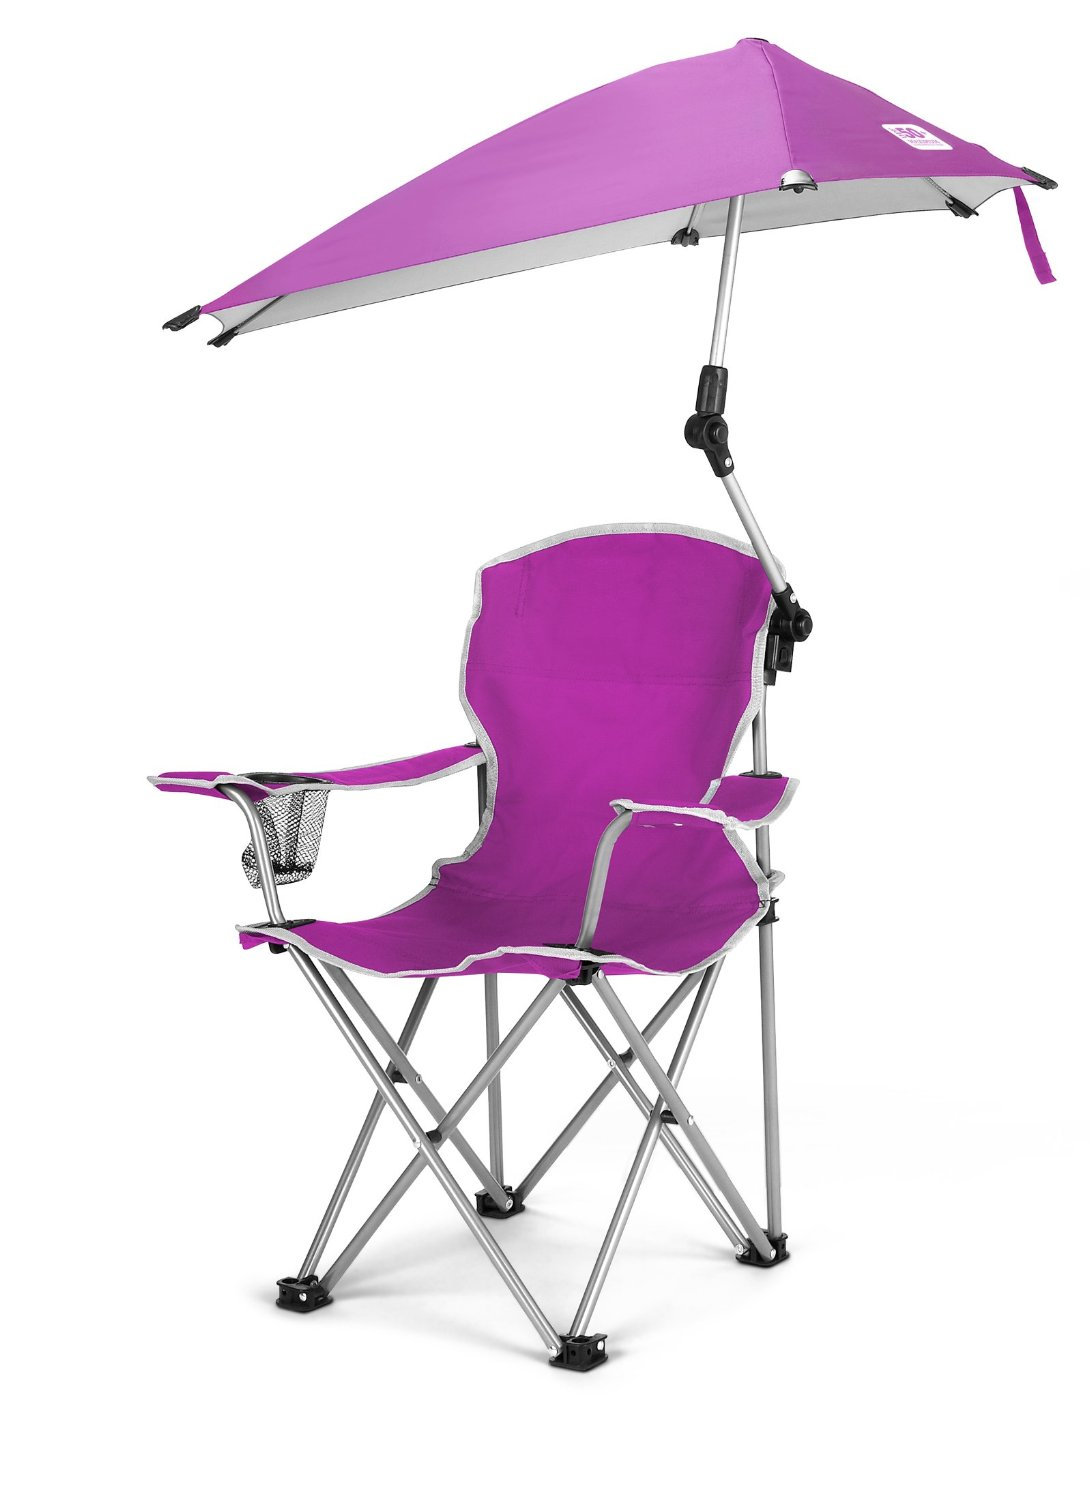 kids beach chair with adjustable umbrella desk posture pillow the best protection for children review of sport brella mini